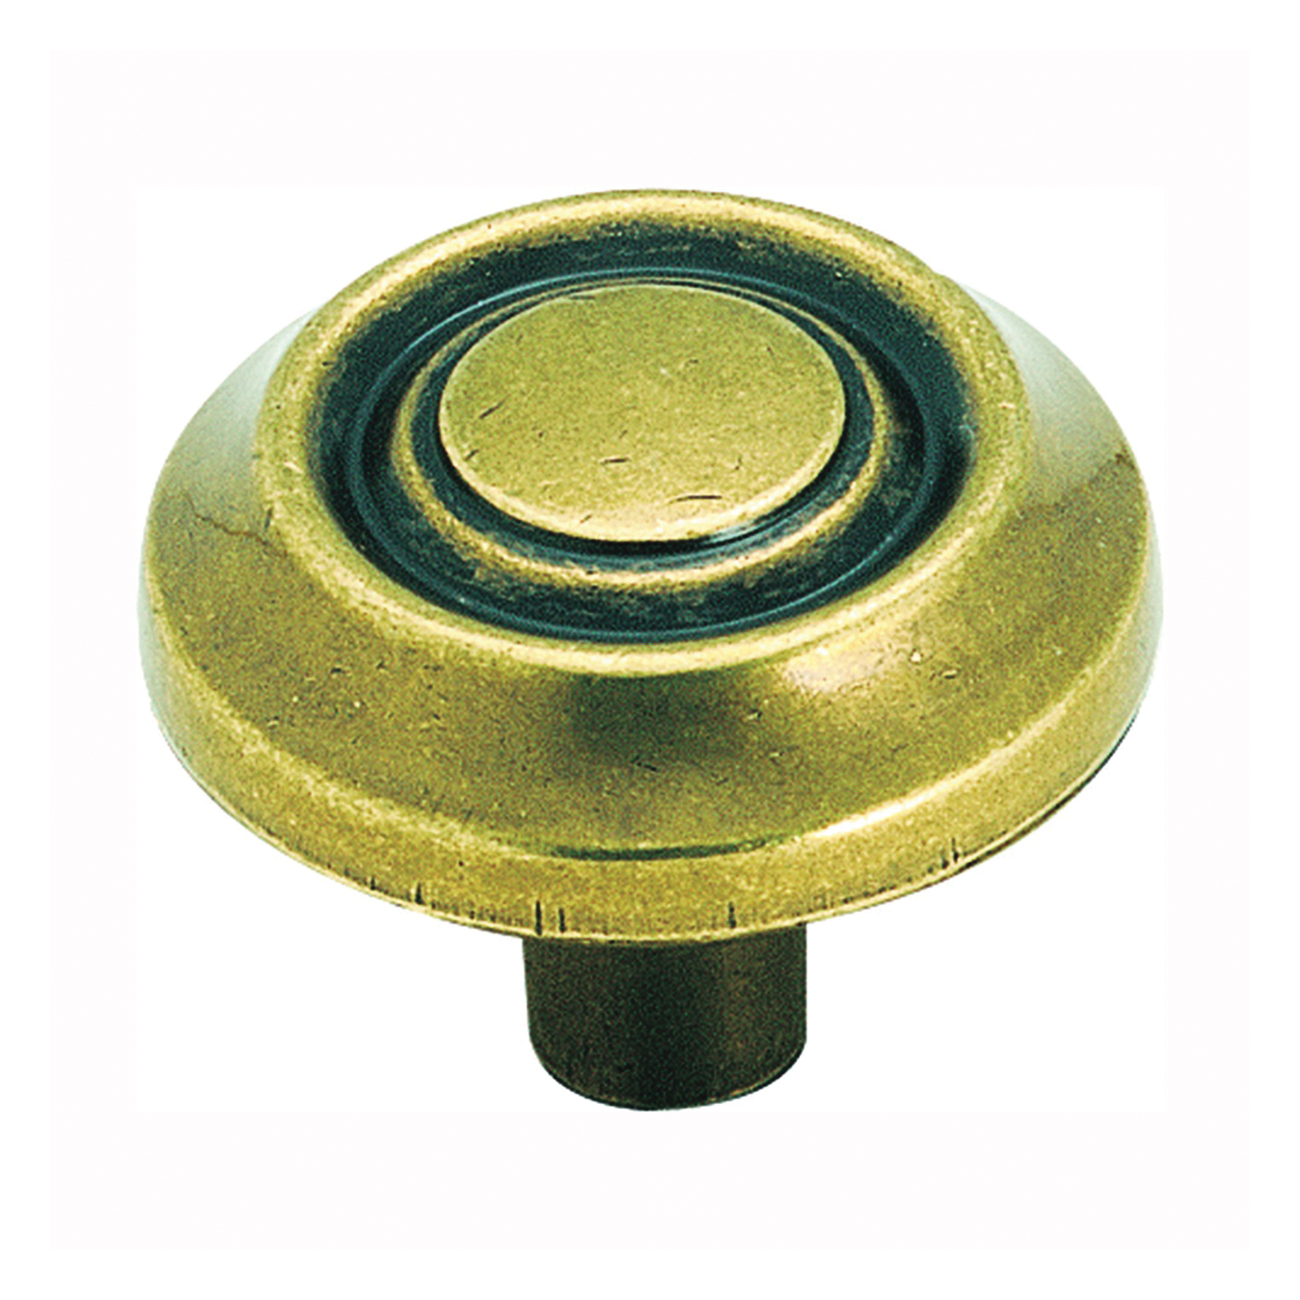 Picture of Amerock BP3423BB Cabinet Knob, 1 in Projection, Zinc, Burnished Brass